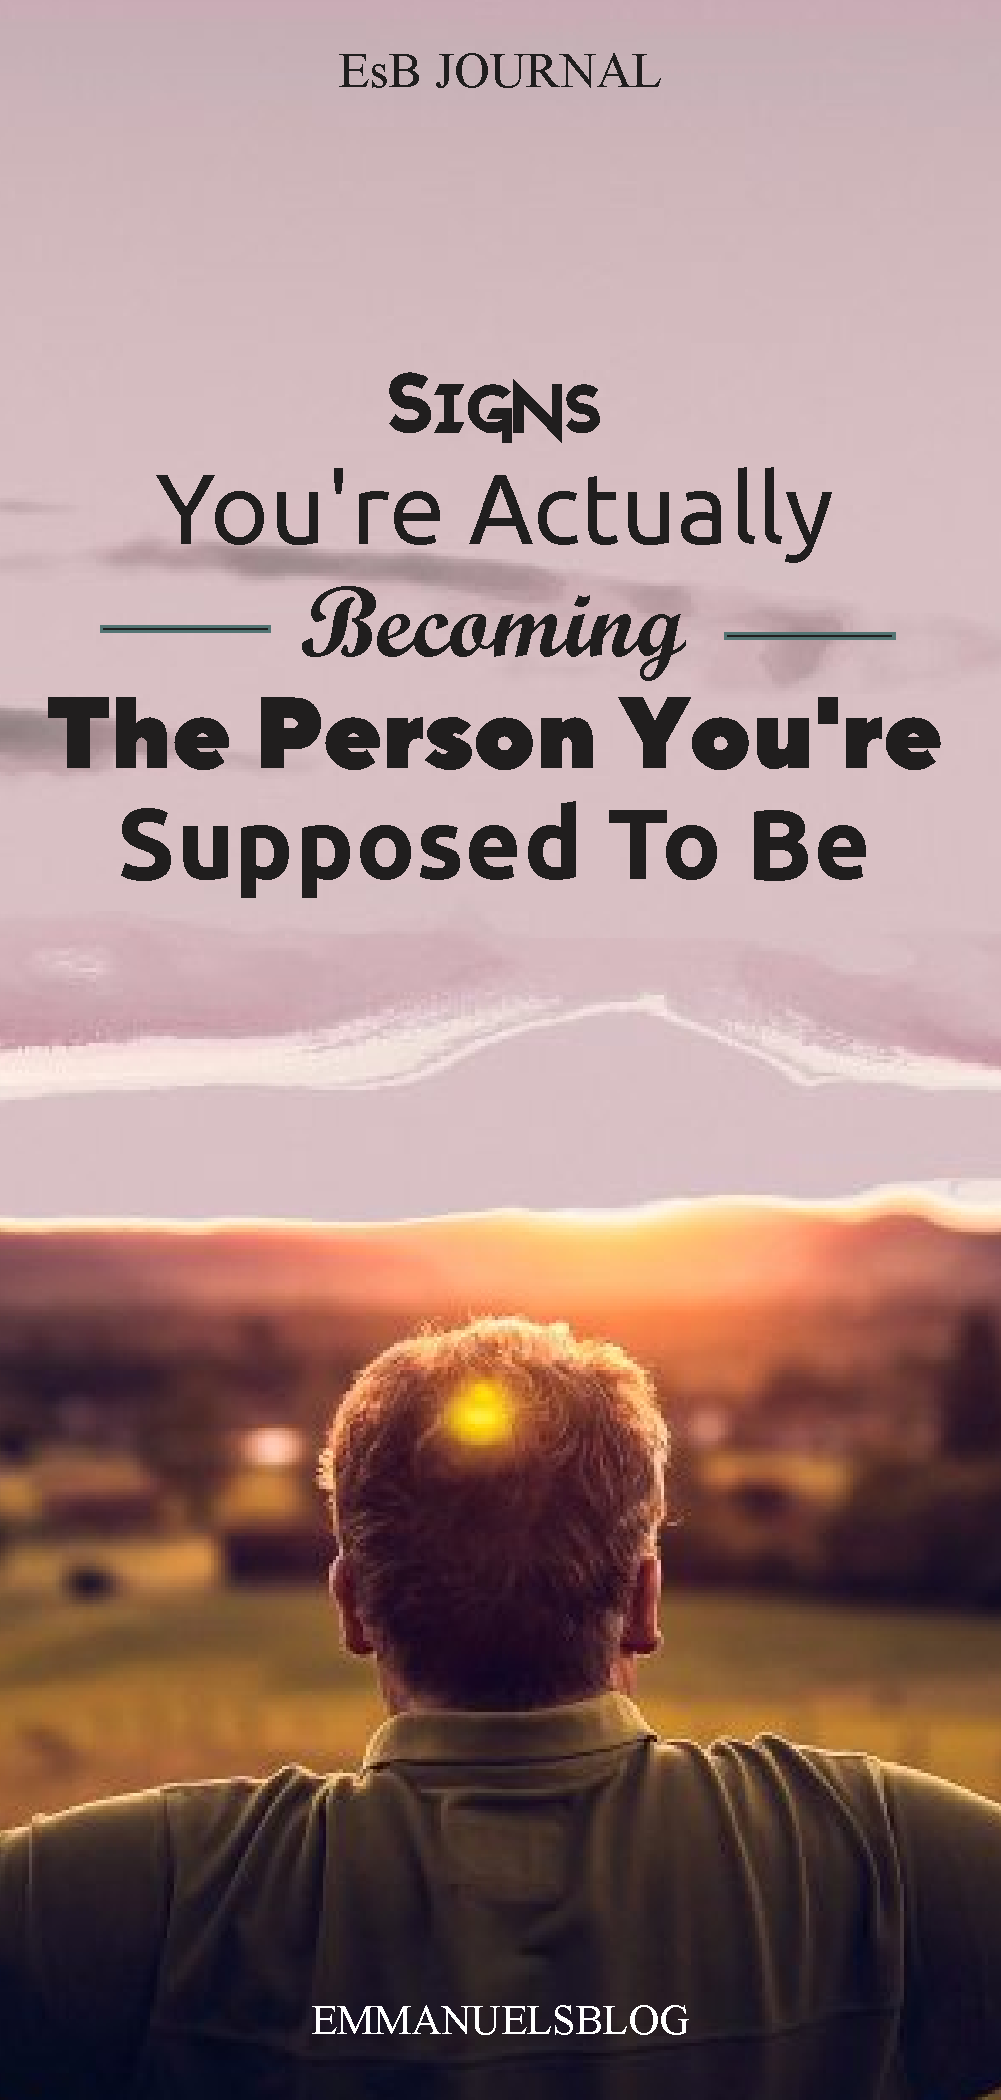 Signs You're Actually Becoming The Person You're Supposed To Be In 2021